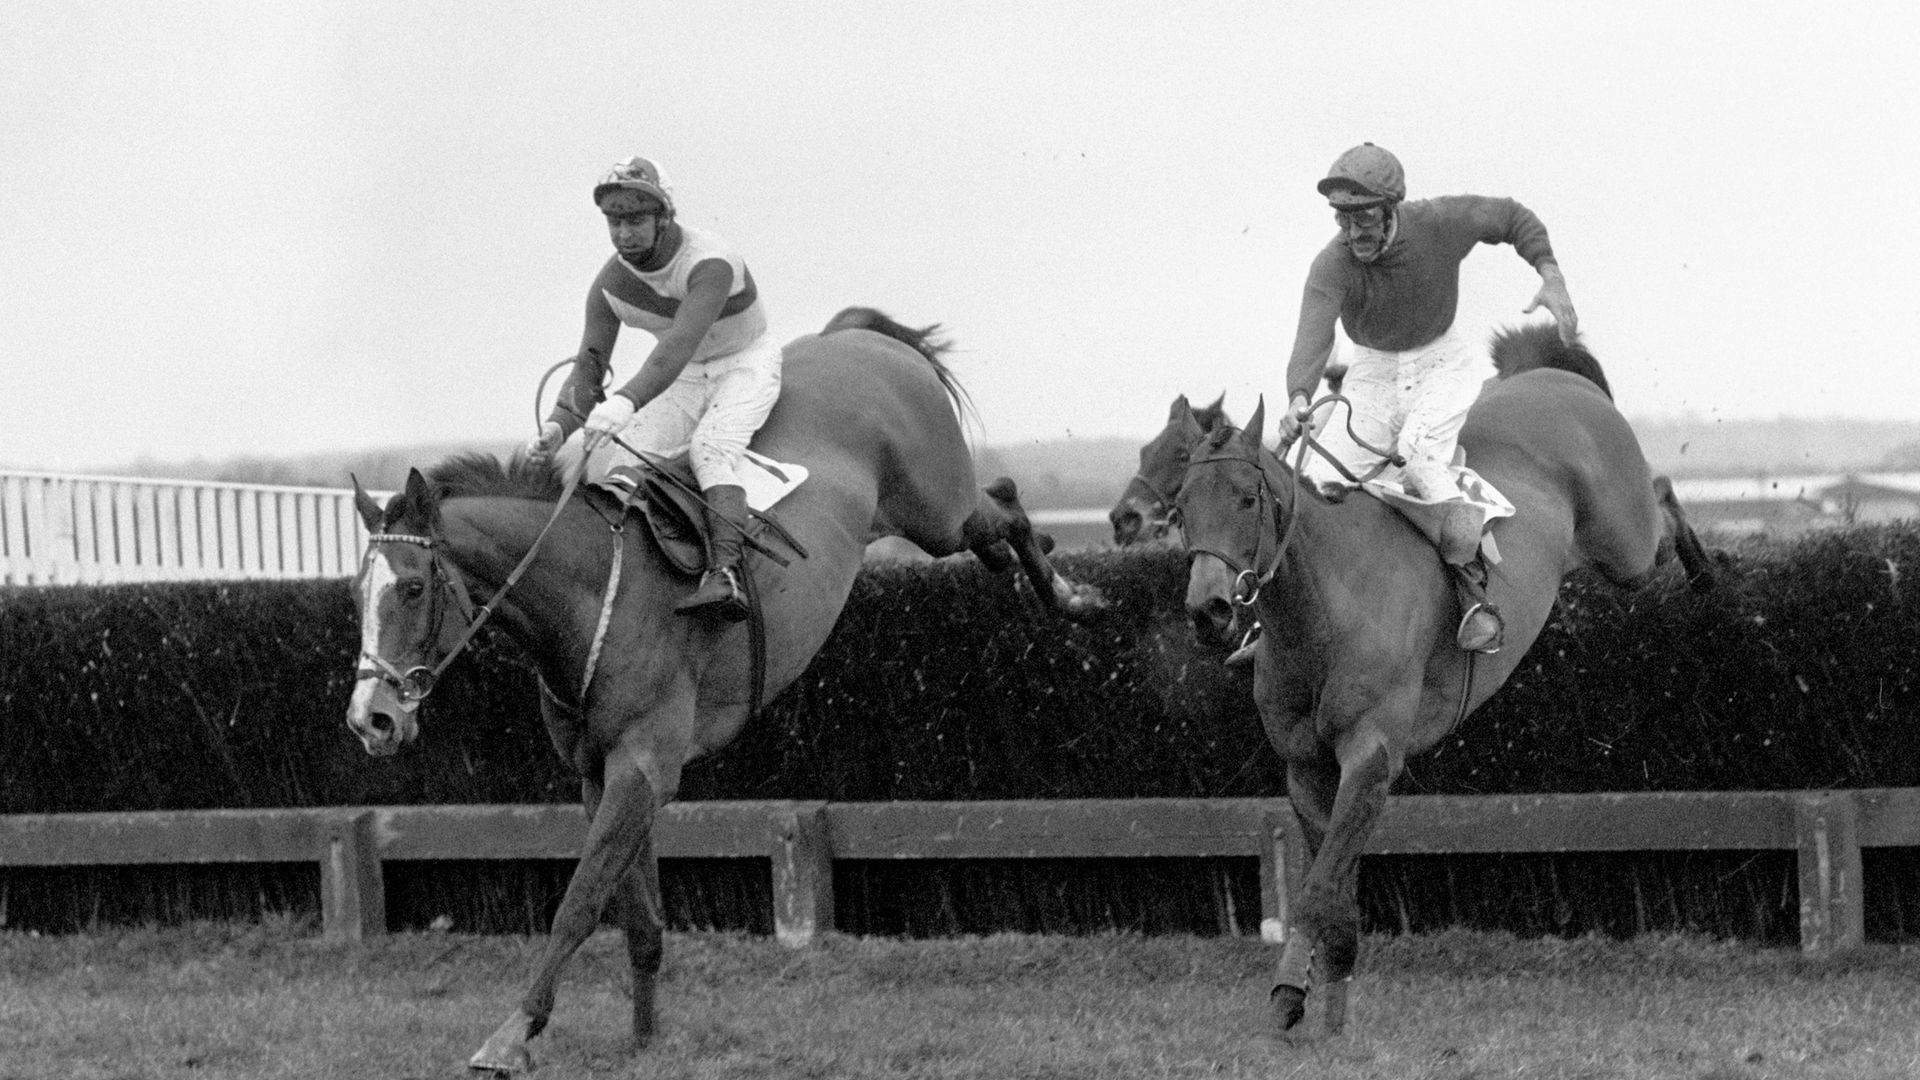 The Duke of Alburquerque (right) on Nereo in 1974 - Credit: PA Archive/PA Images